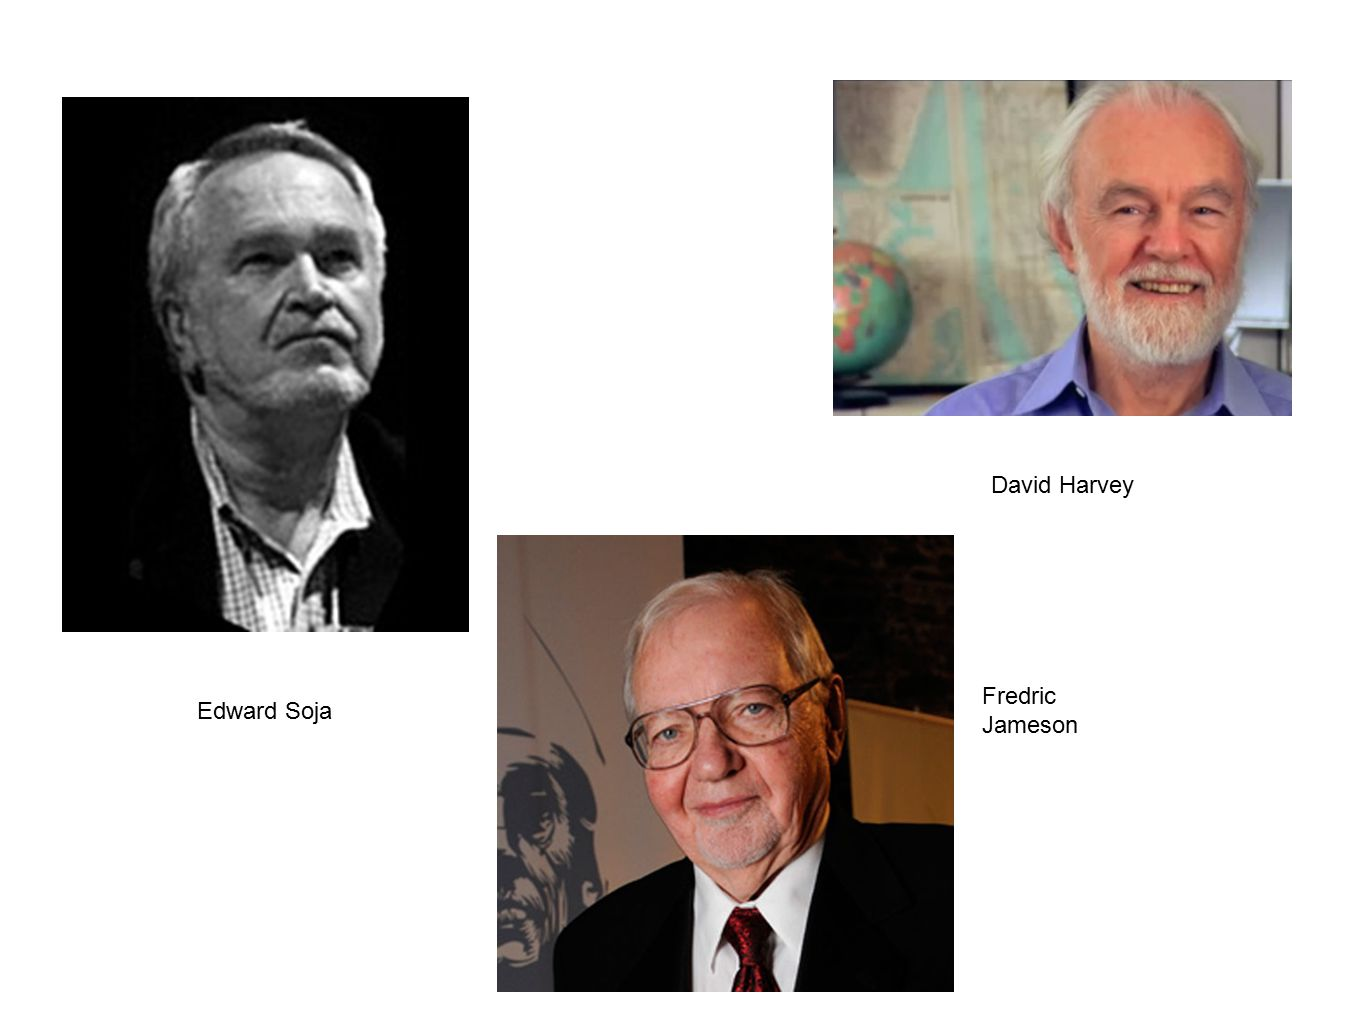 David Harvey Fredric Jameson Edward Soja